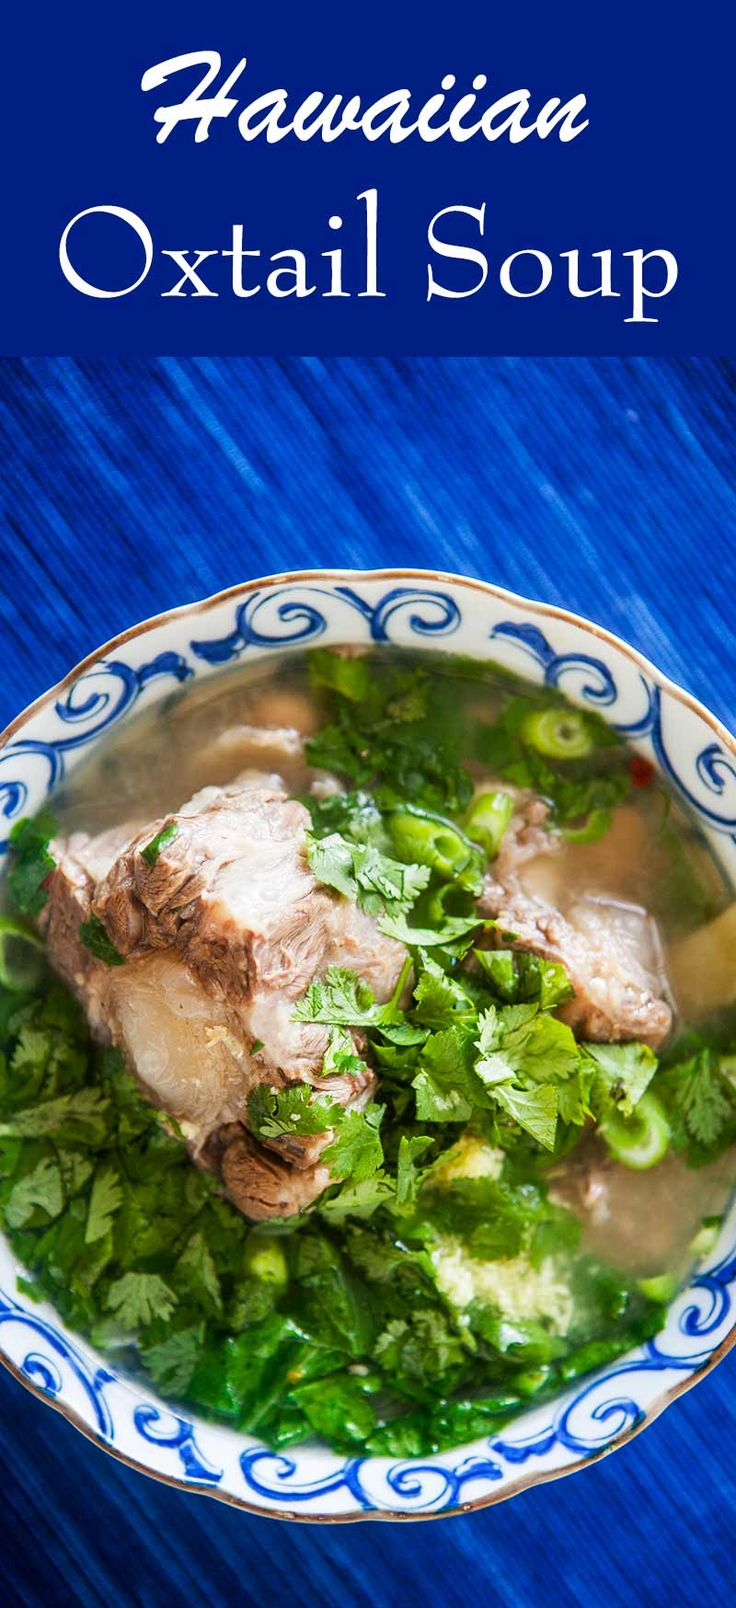 I love this Hawaiian Oxtail Soup! The oxtails are slowly cooked to produce their own broth, with ginger, anise, orange peel, peanuts, chili, mustard greens, onions, and cilantro.